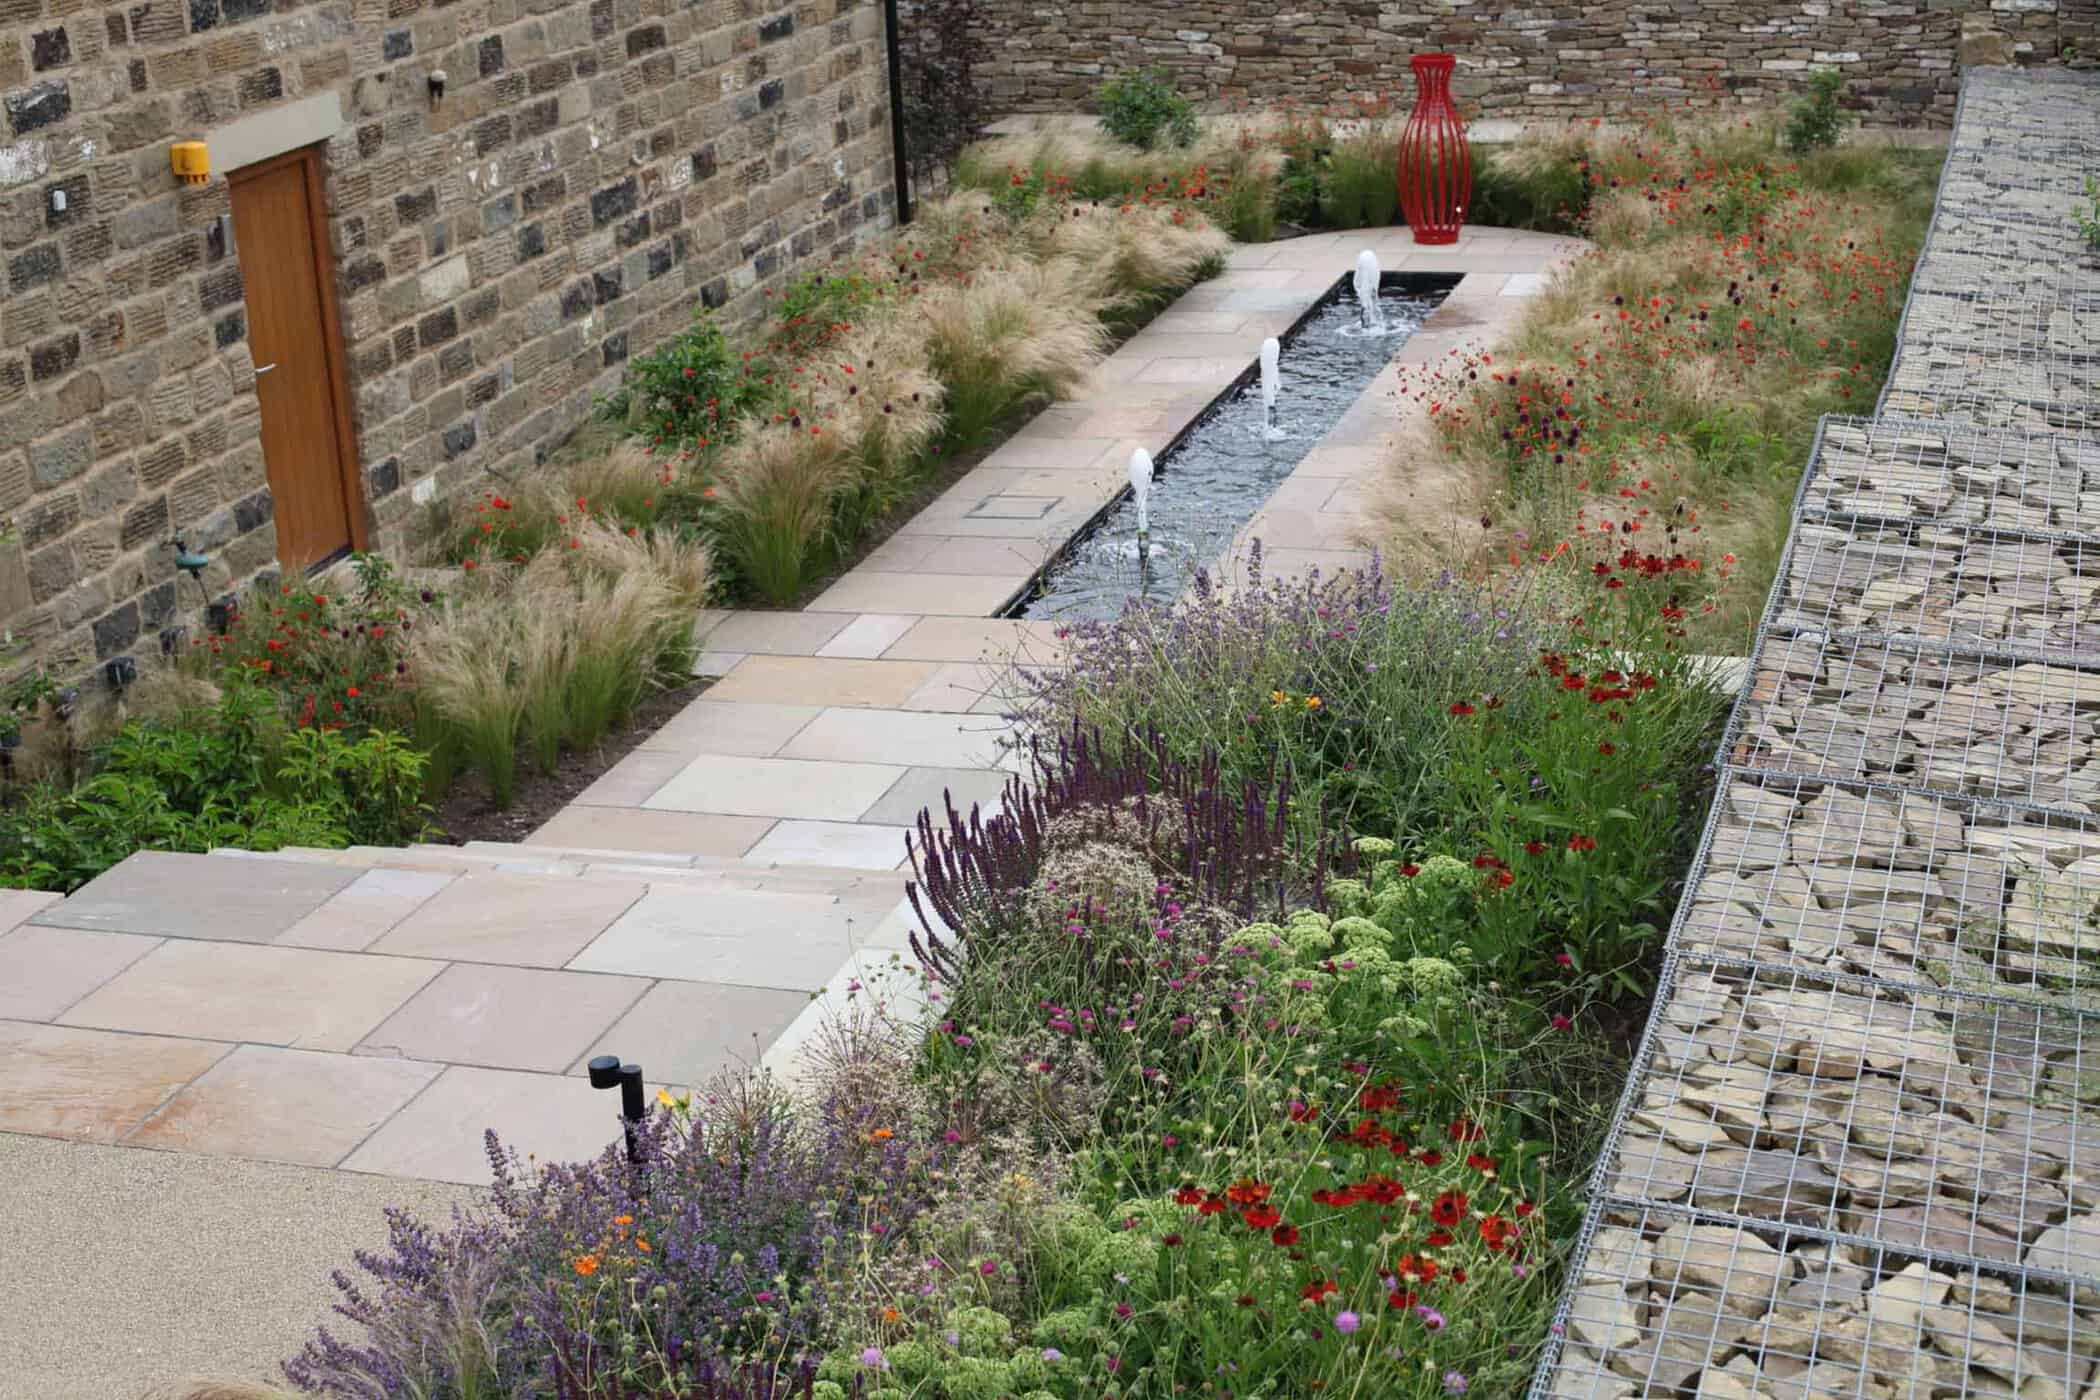 Barn Conversion-bestall and co-Water feature-Grassy Planting-Focal Point